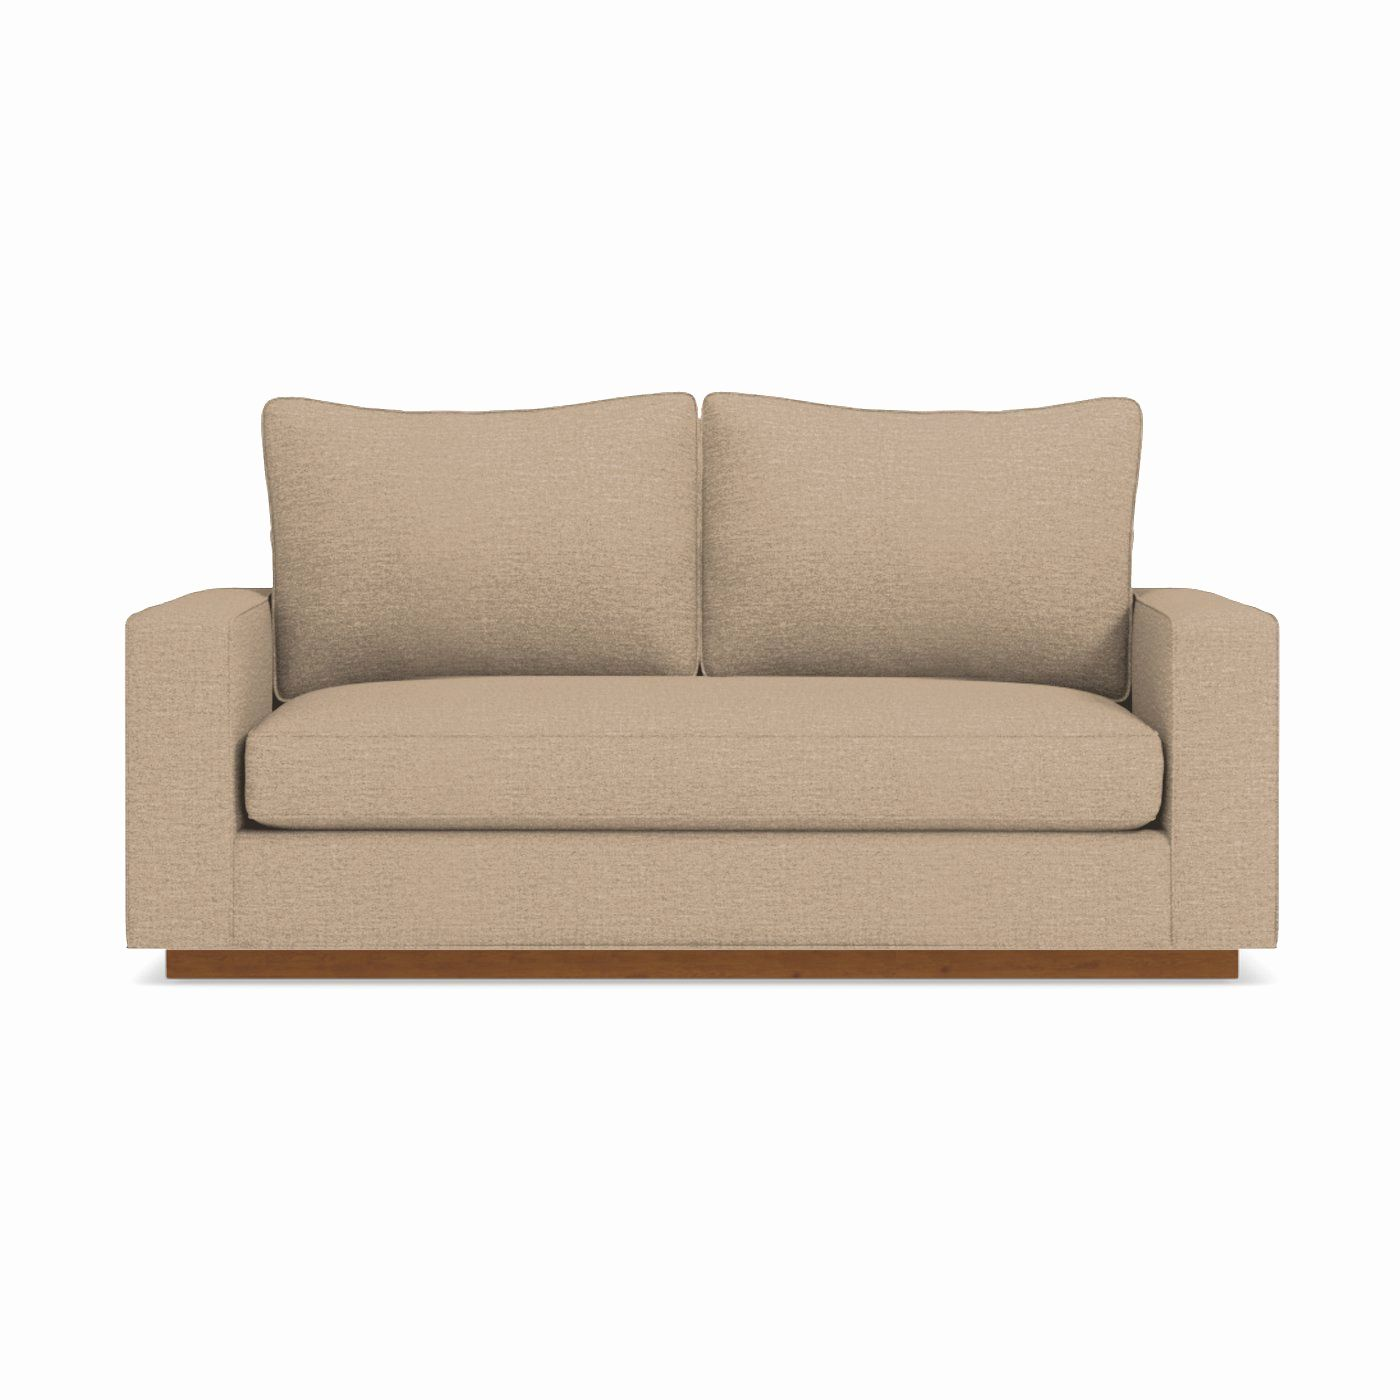 Apartment Size Sleeper Sofas Apartment Size Sleeper Sofas ...